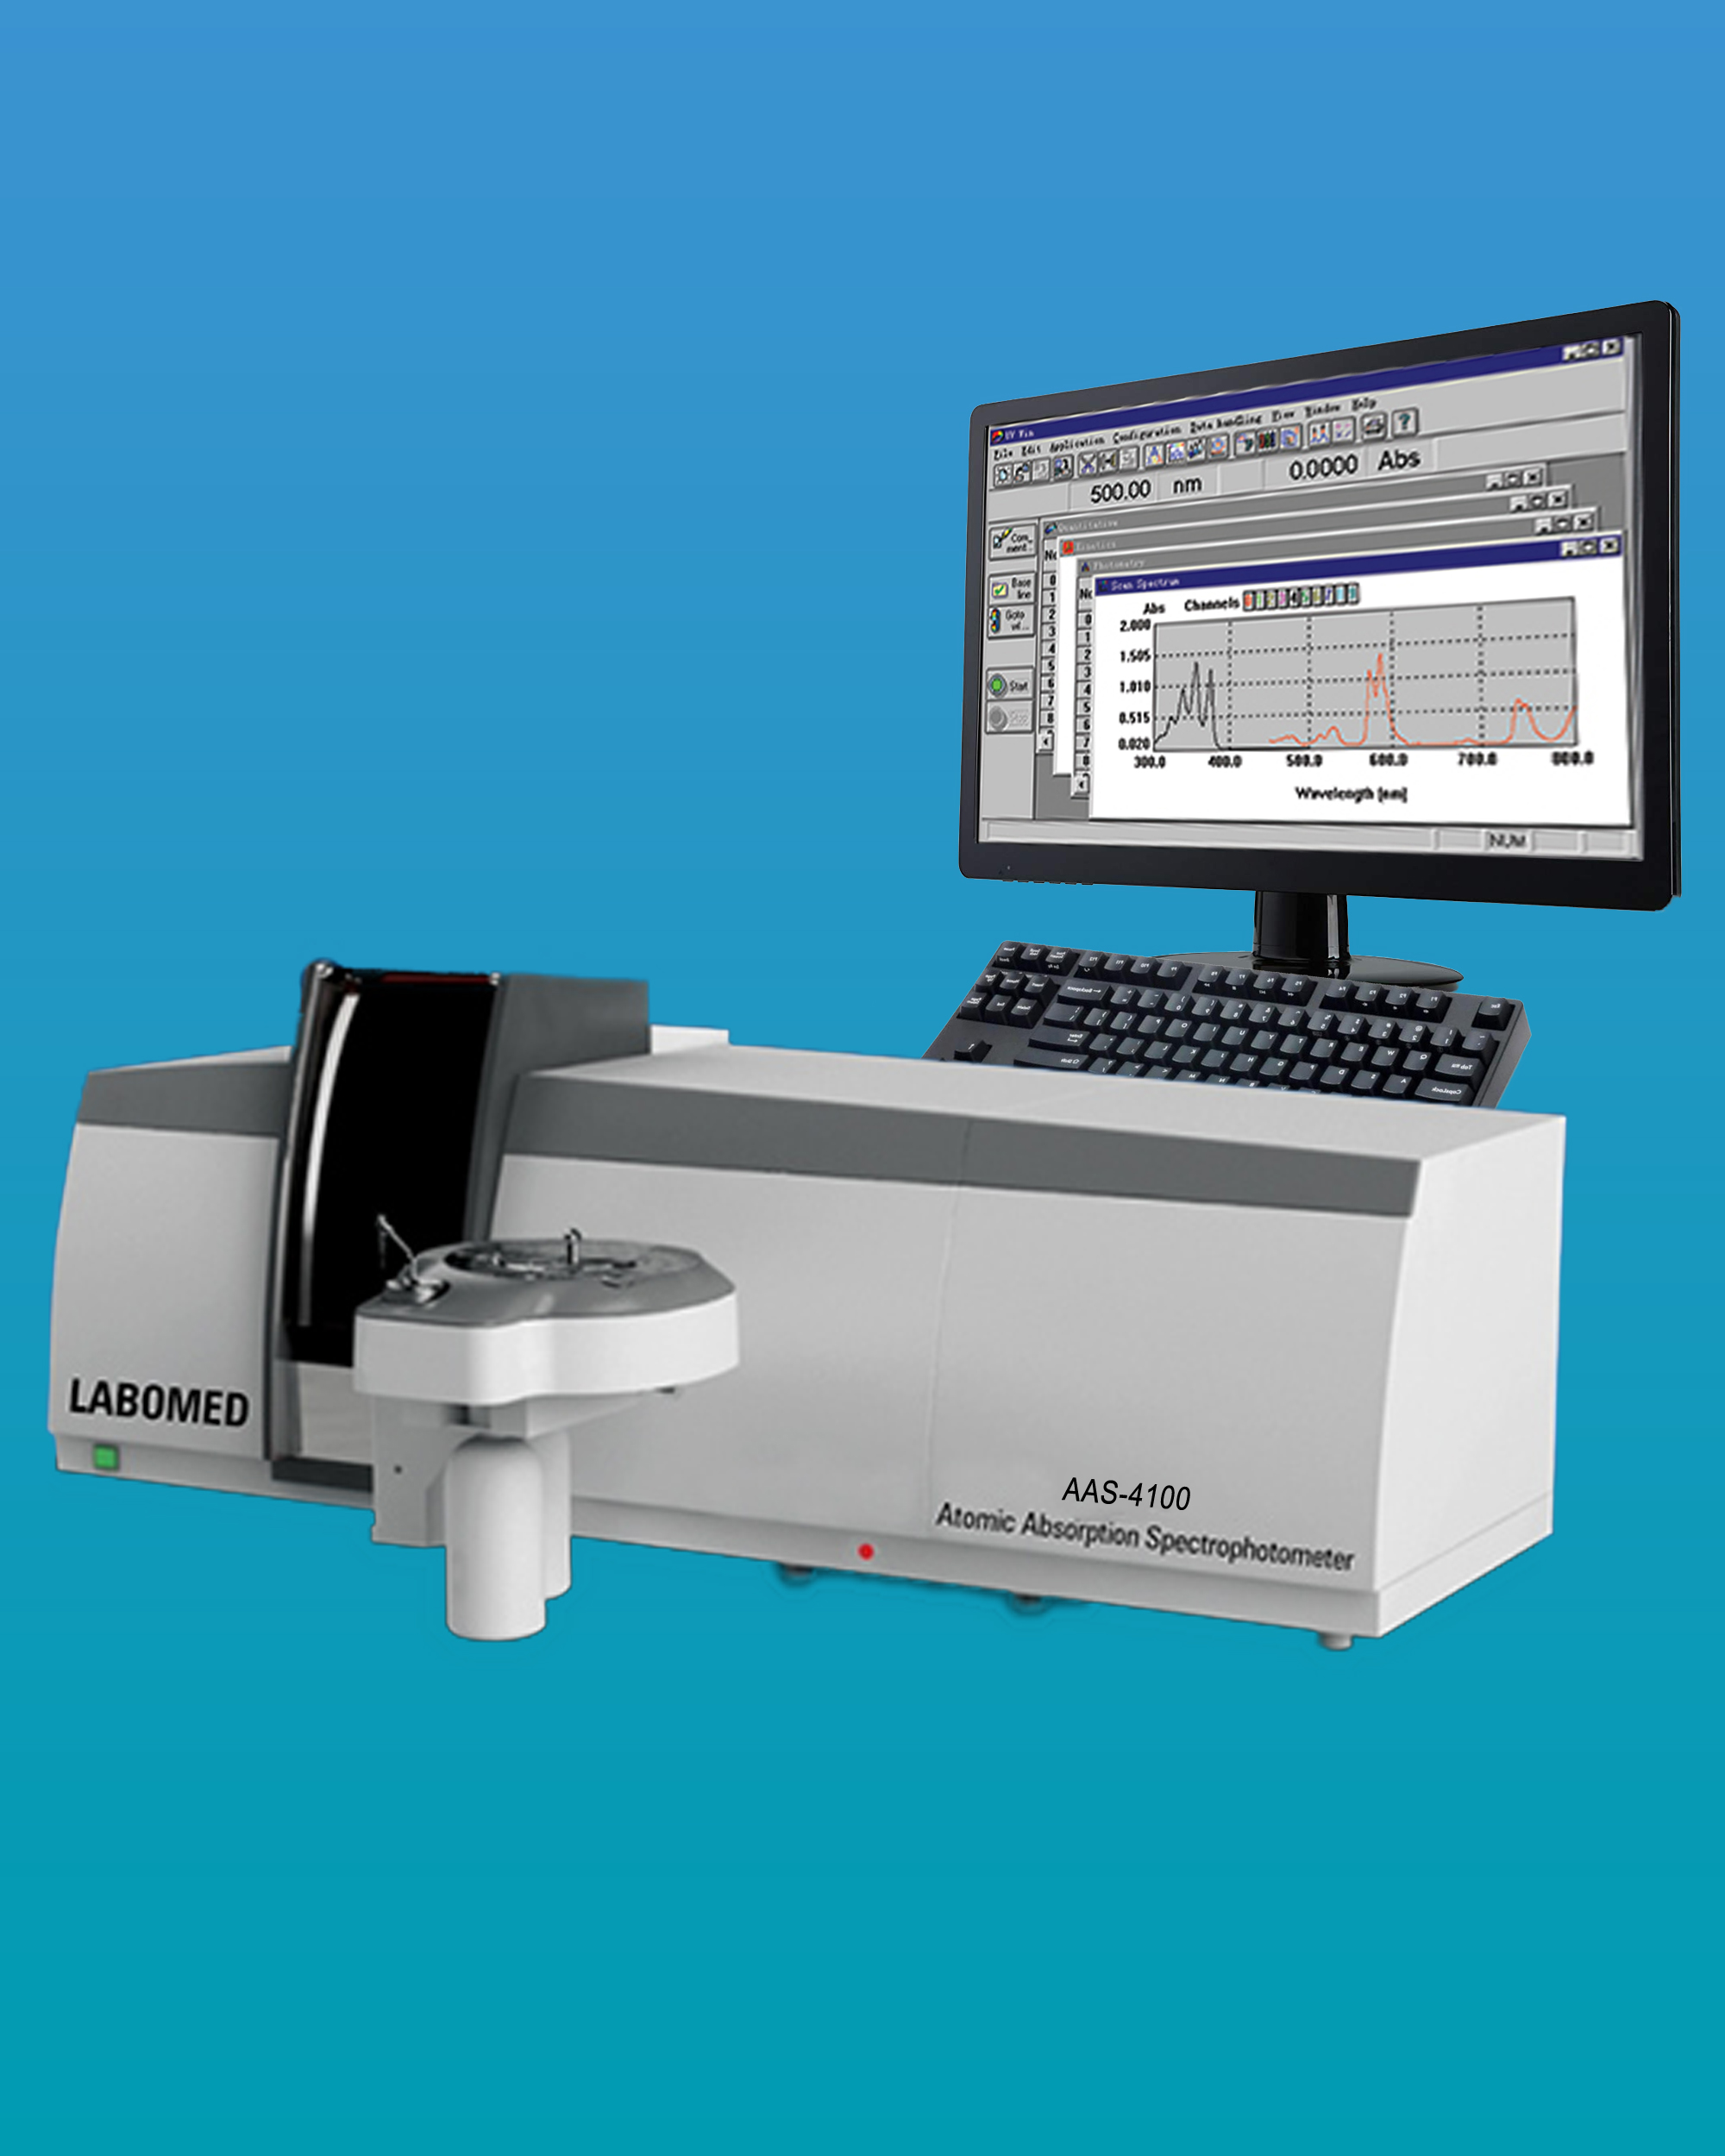 [AAS-4100] Atomic Absorption Spectrophotometer